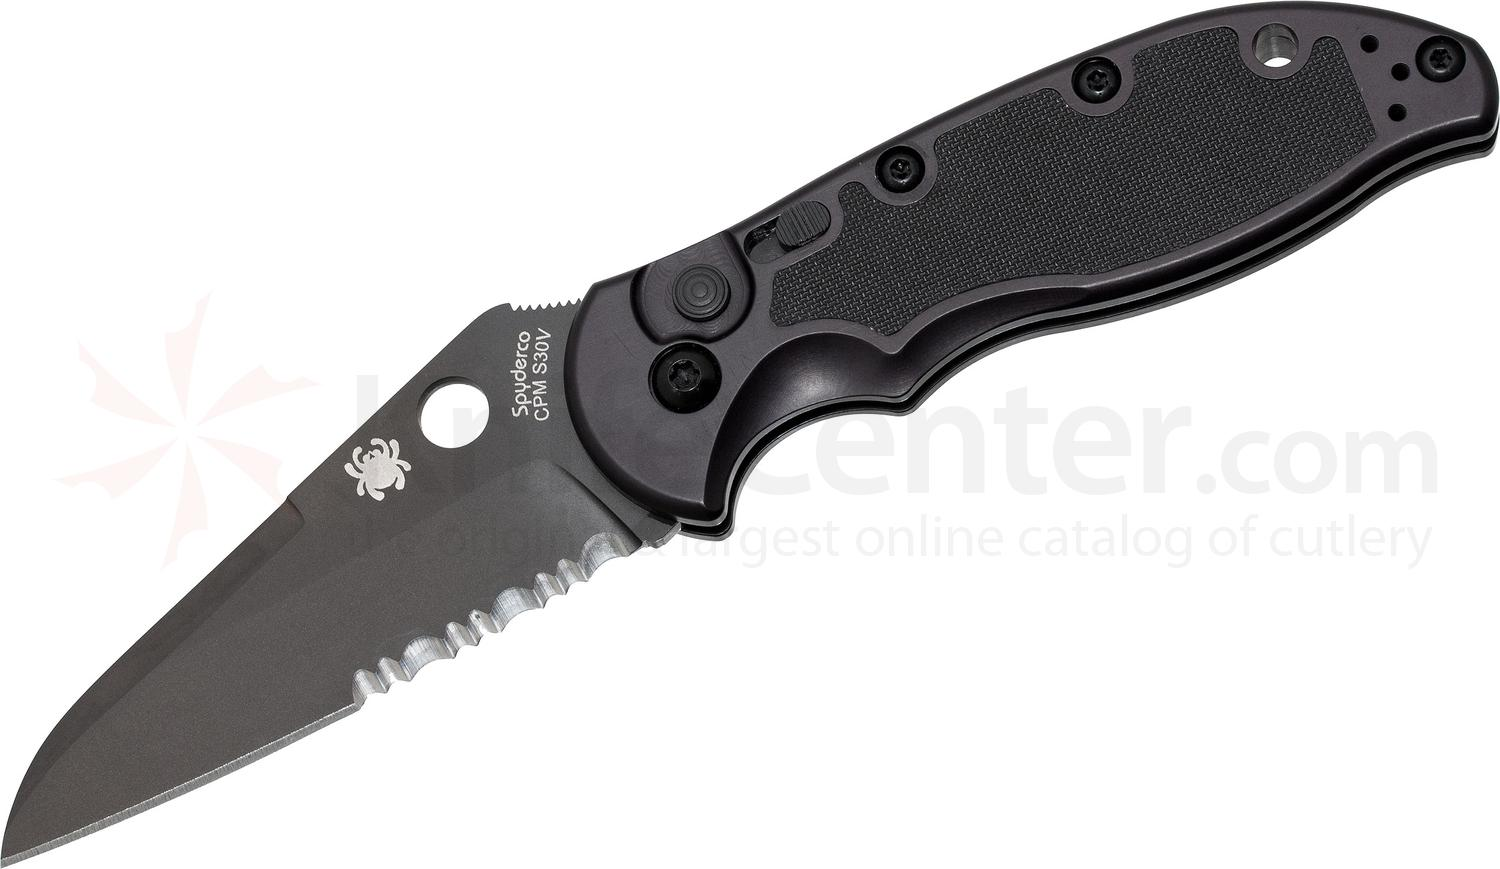 Spyderco C121BKPS Embassy AUTO 3-1/8 inch S30V Black Combo Blade, Aluminum Handles with G10 Inlays